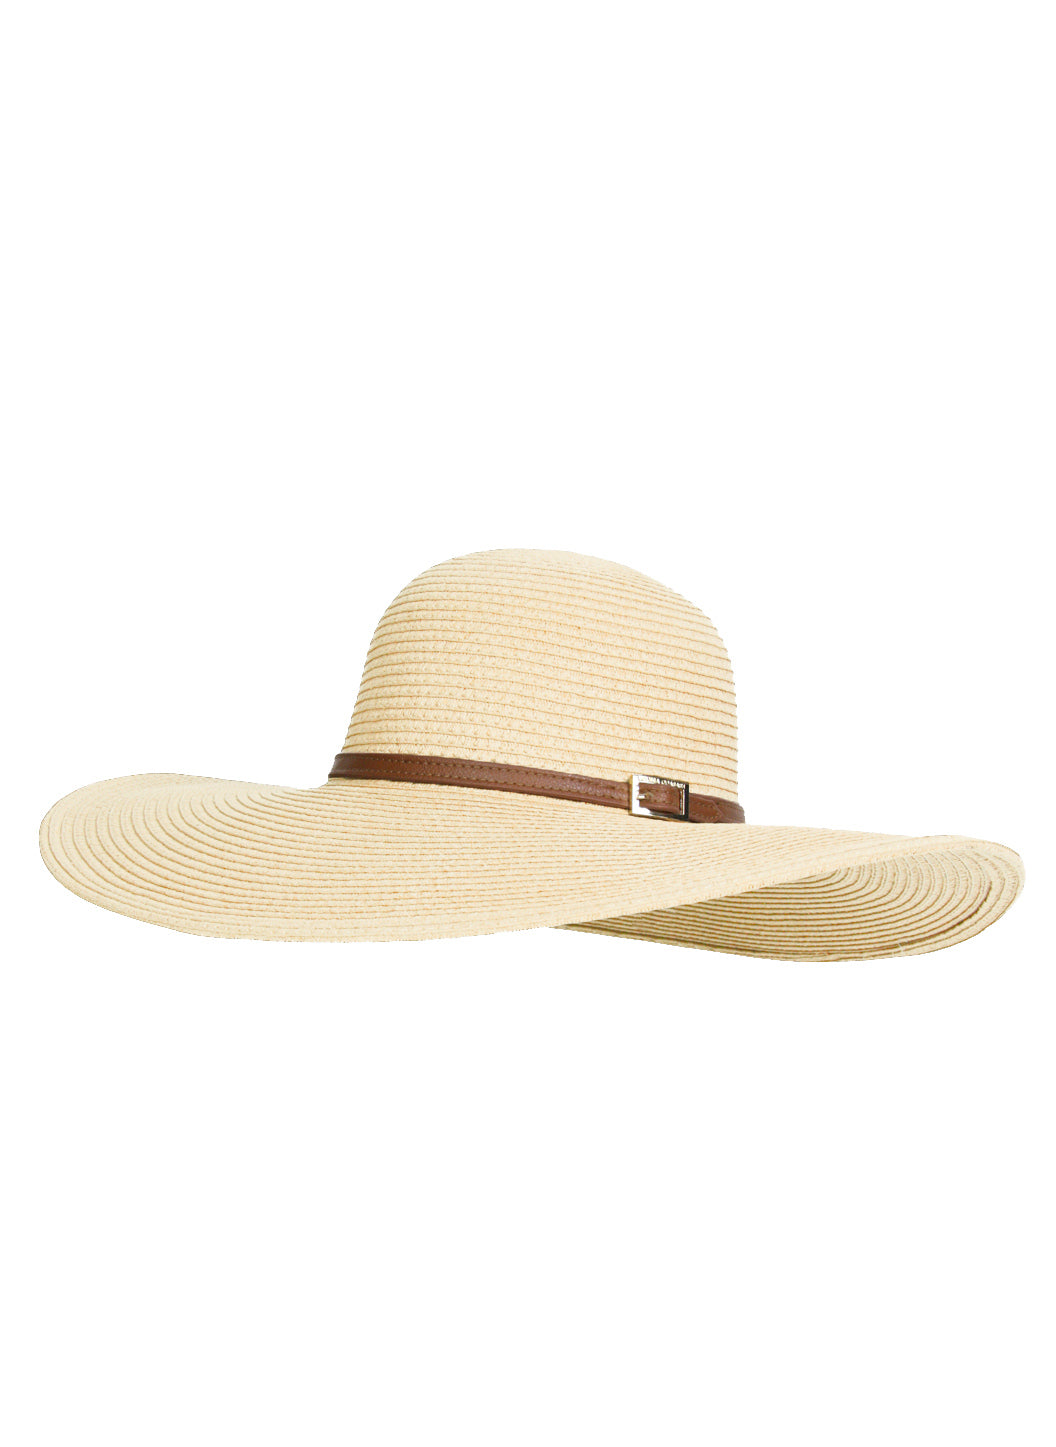 Melissa Odabash Jemima Wide Brim Beach Hat Cream - Melissa Odabash Accessories